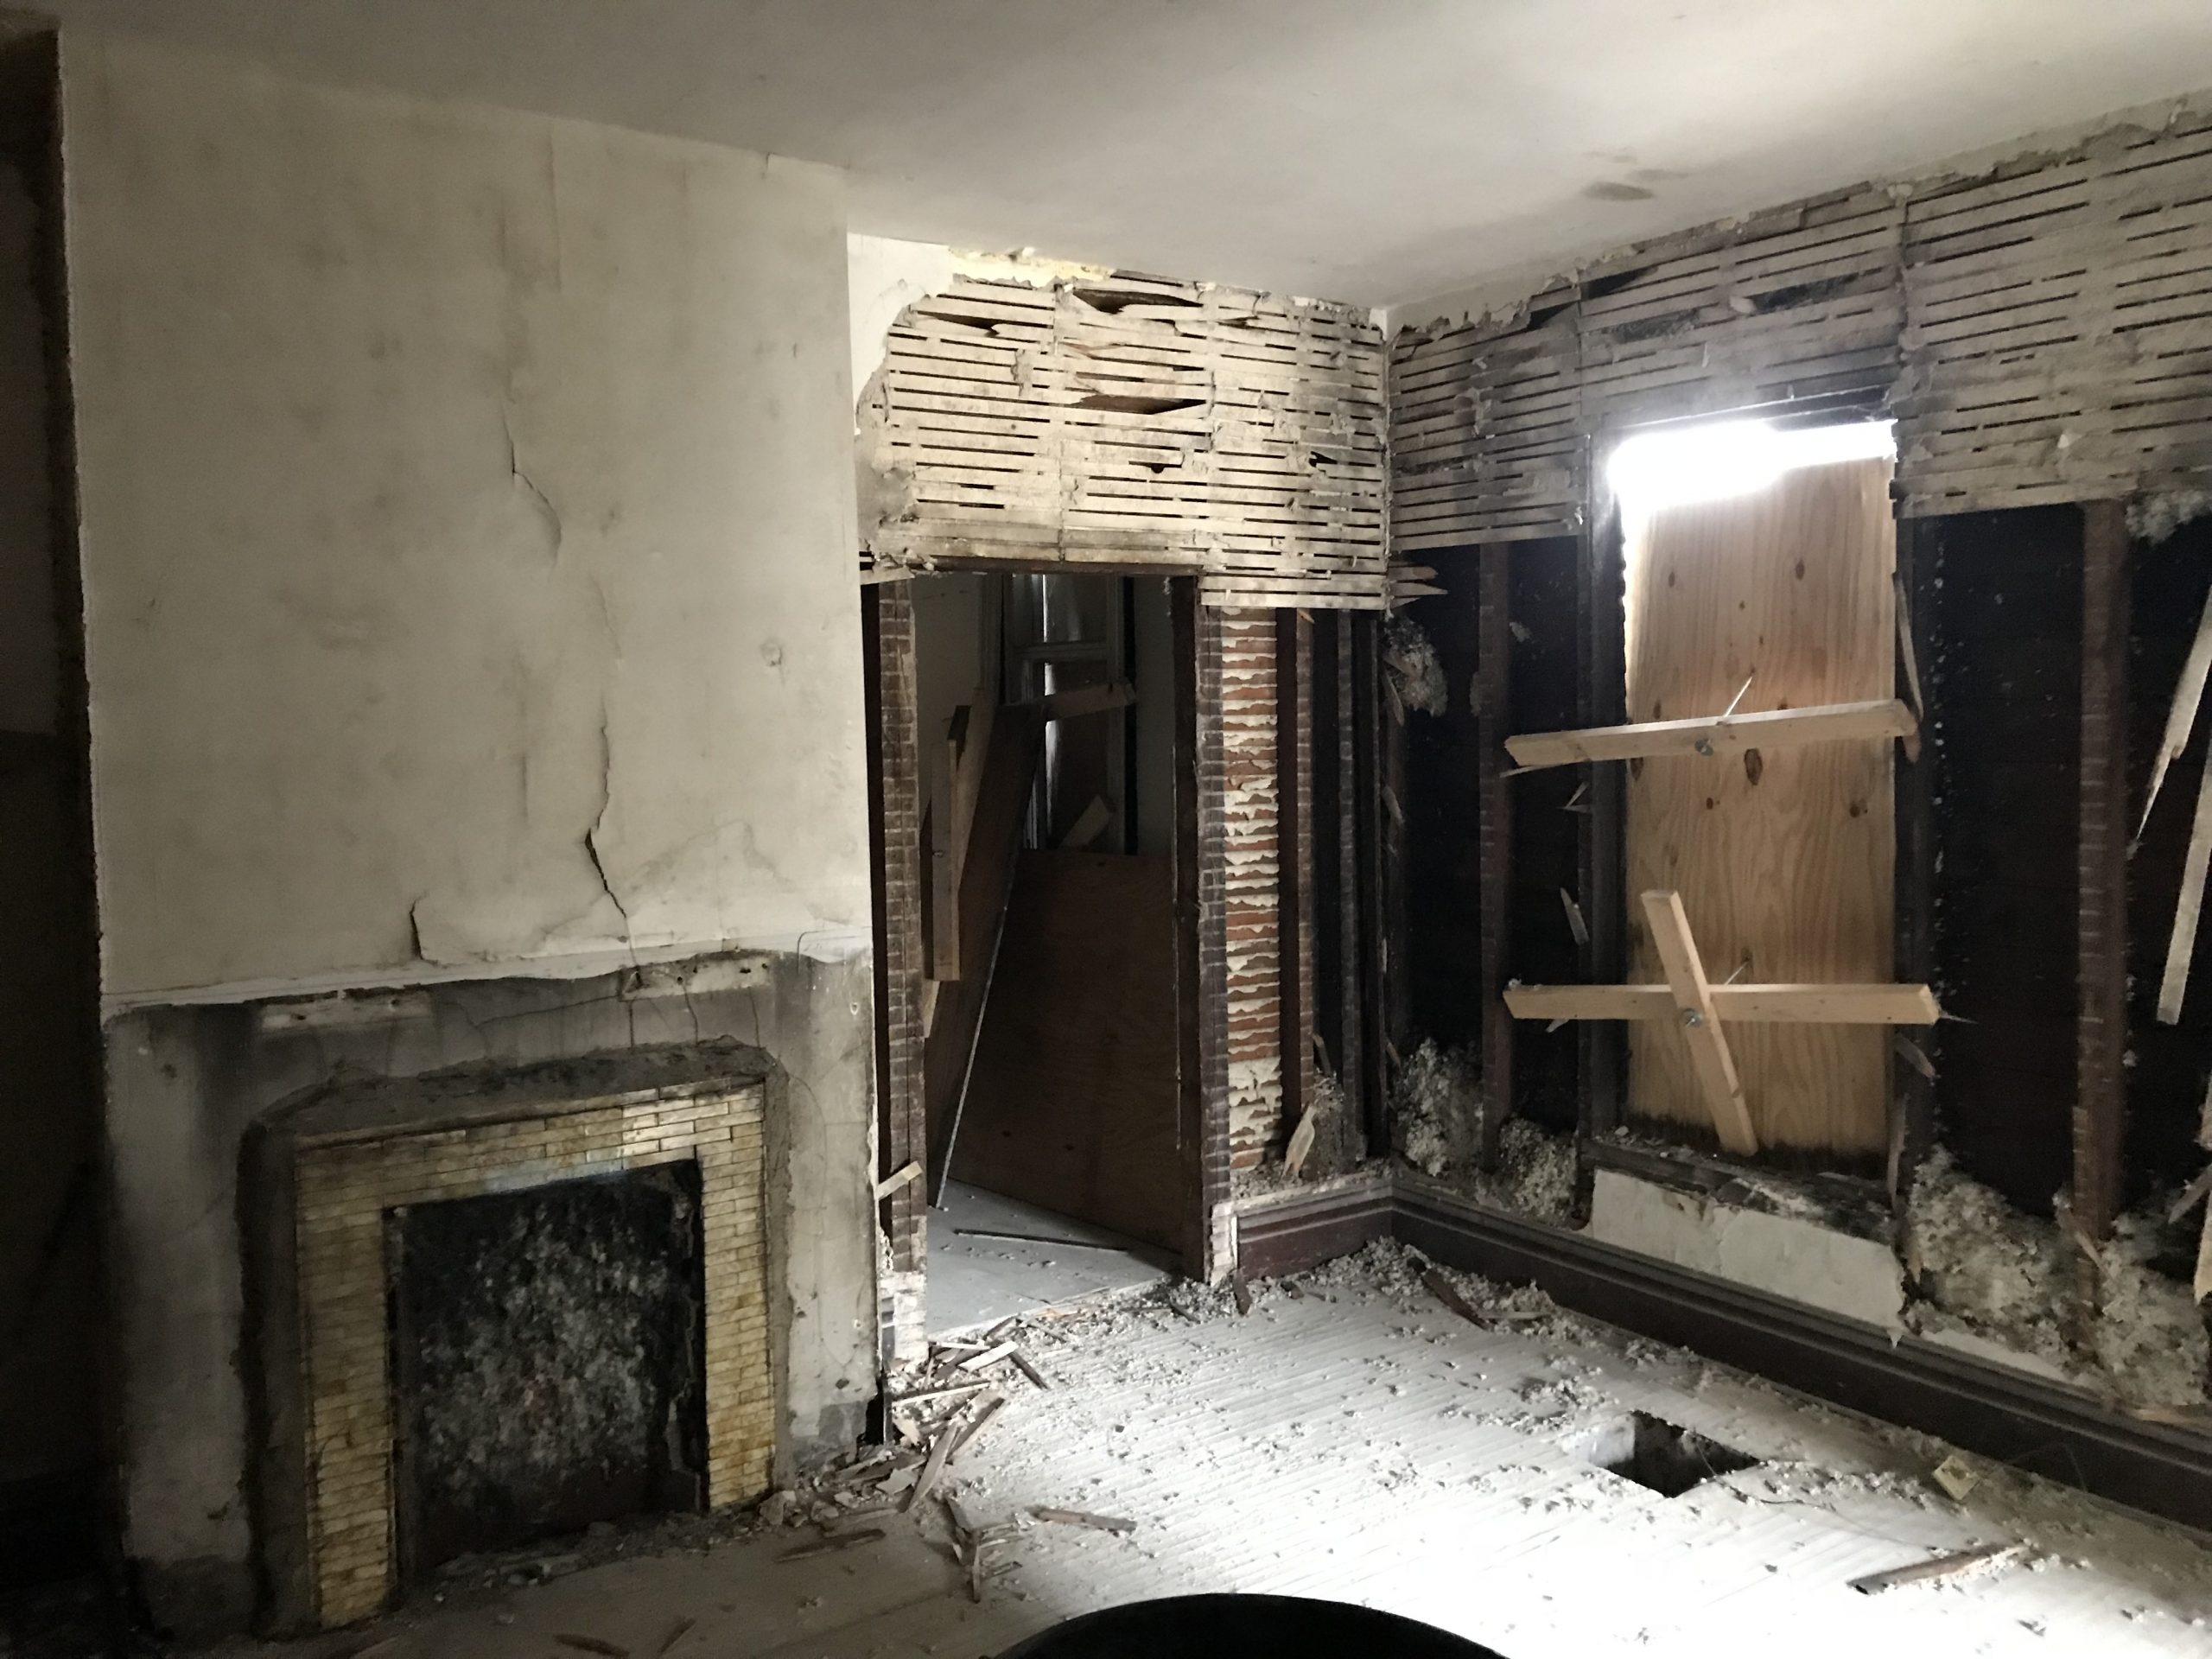 Inside of a gutted home during an Upward Home Solutions renovation project.